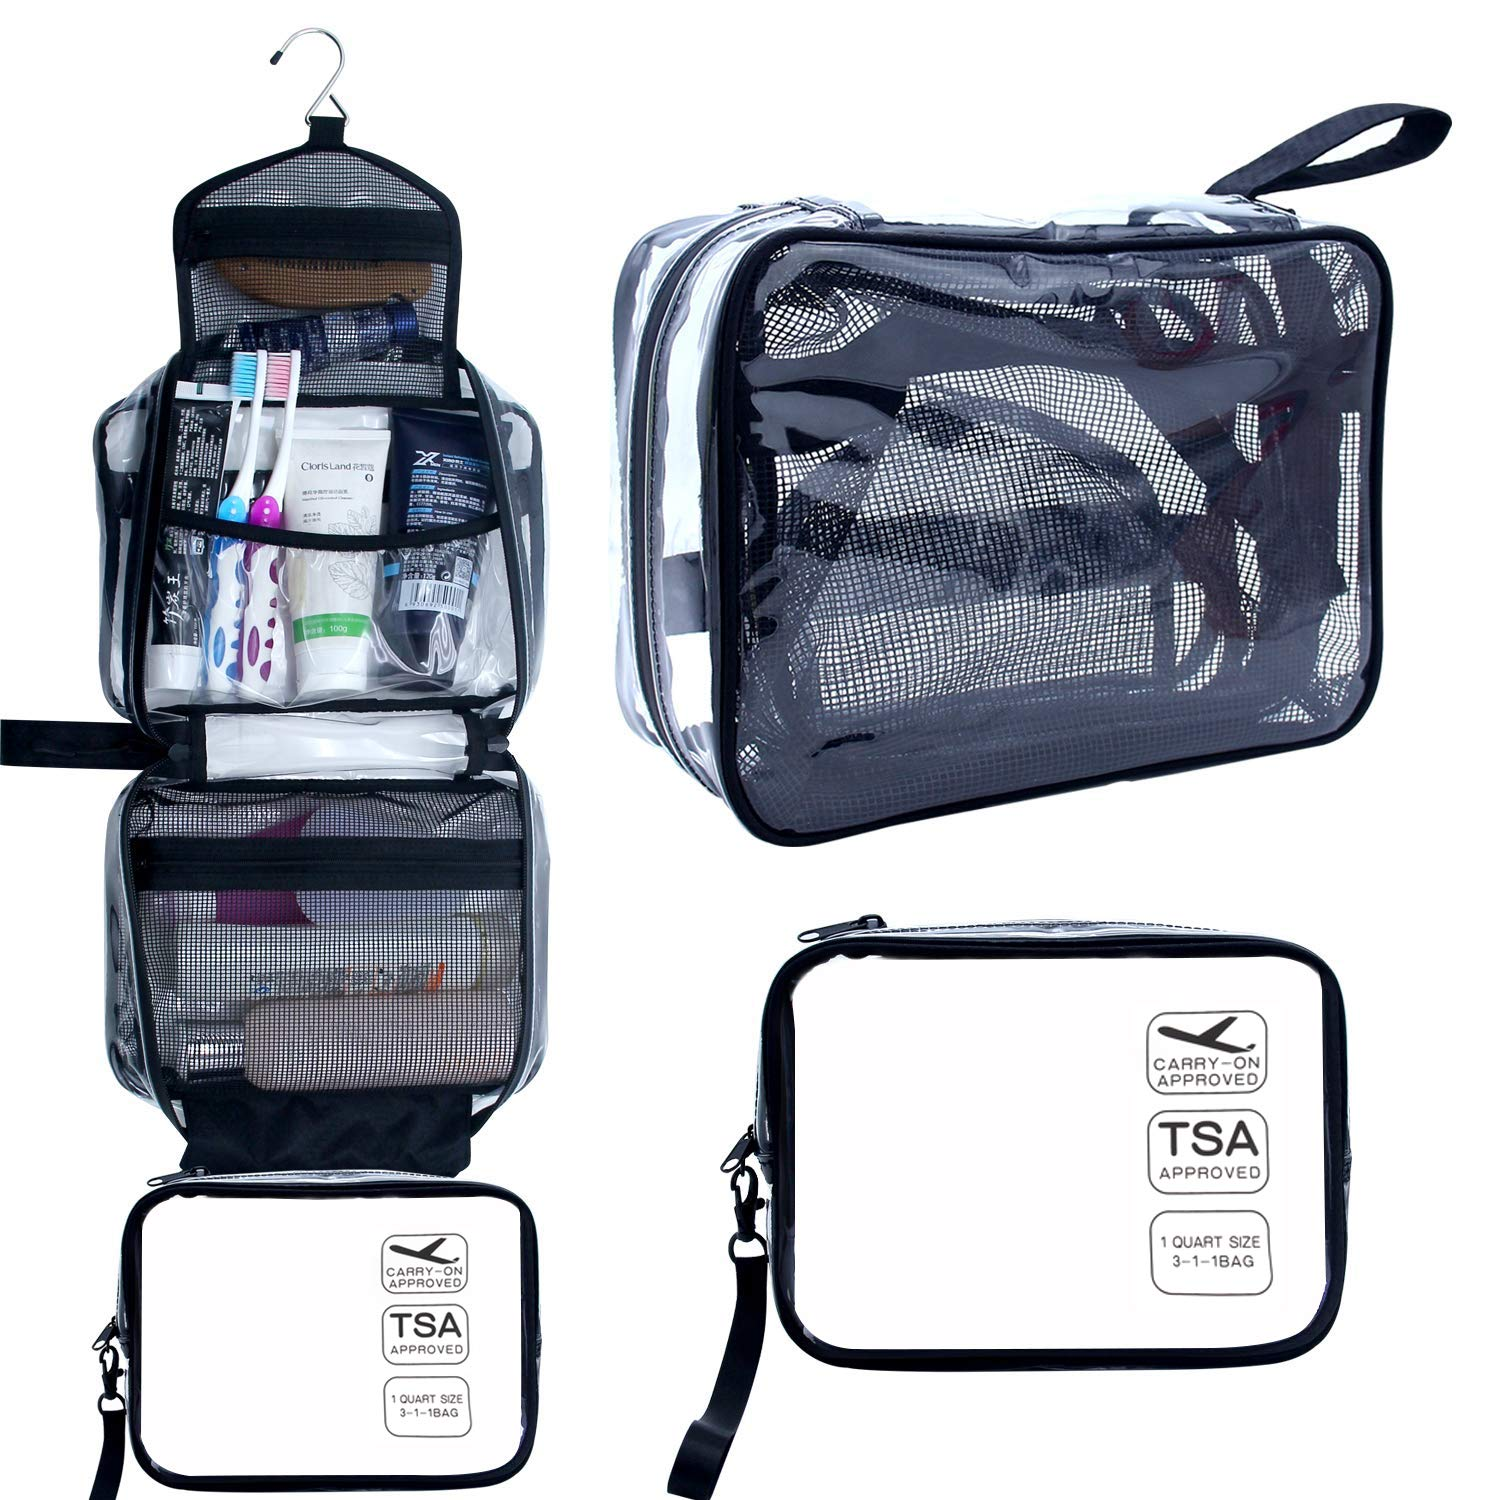 Hanging Toiletry Bag, Clear Travel Toiletry Bag with Detachable TSA Approved Small Clear Bag Airline 3-1-1 Carry On Compliant Bag Makeup Bag for Men and Women (Black)